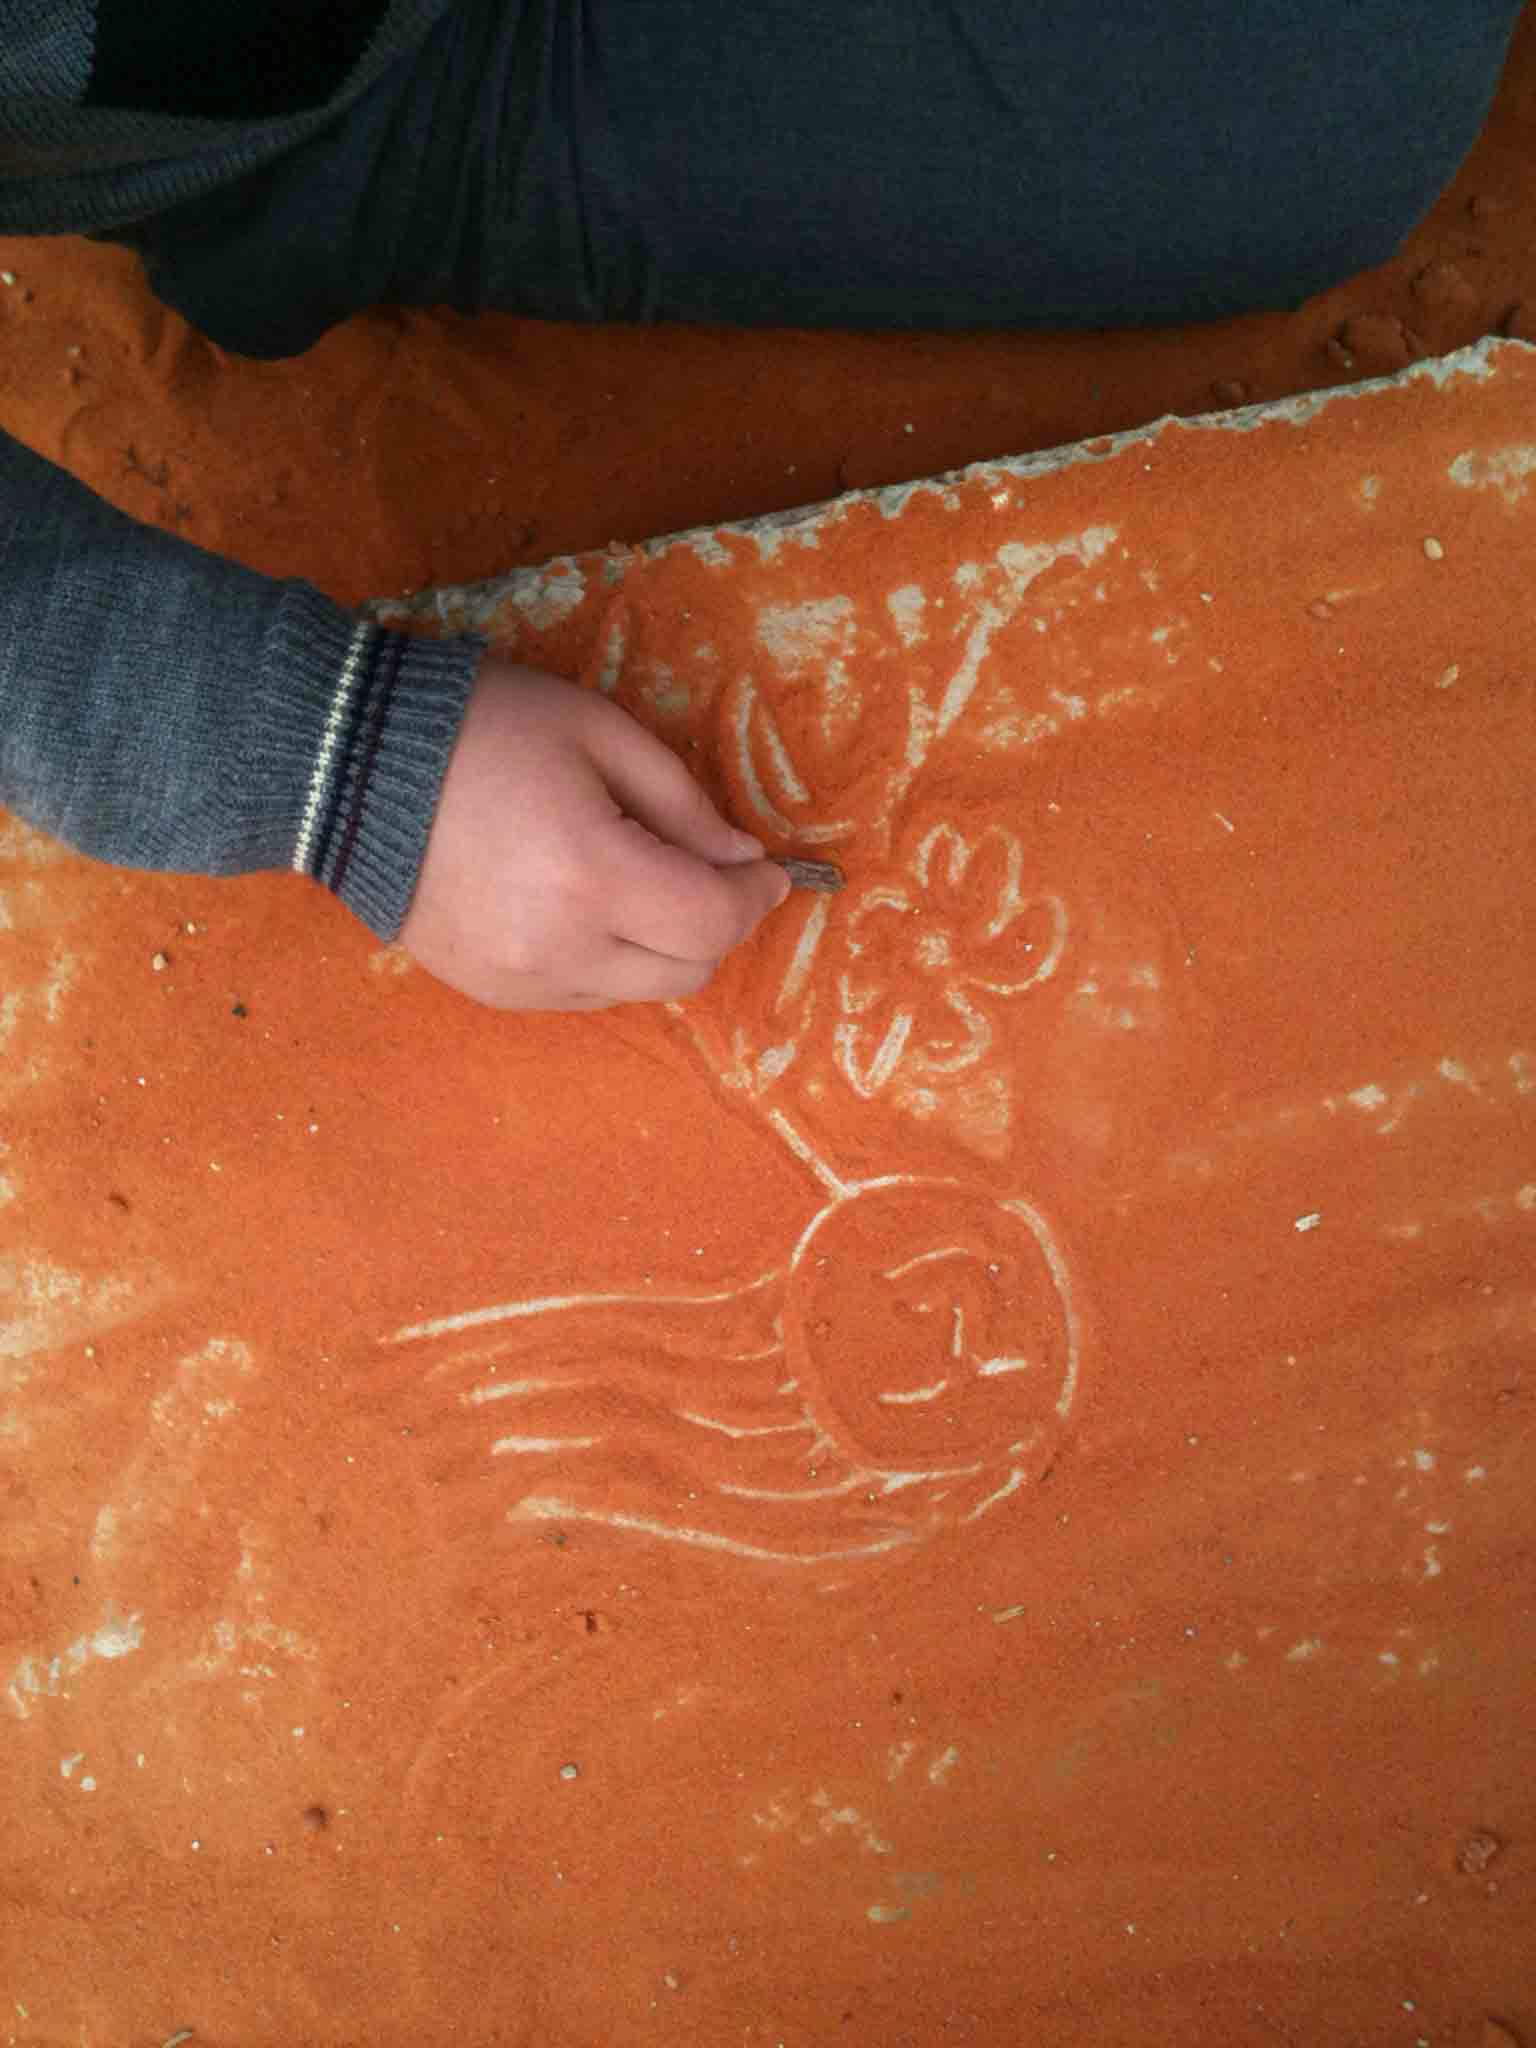 Drawing on sand